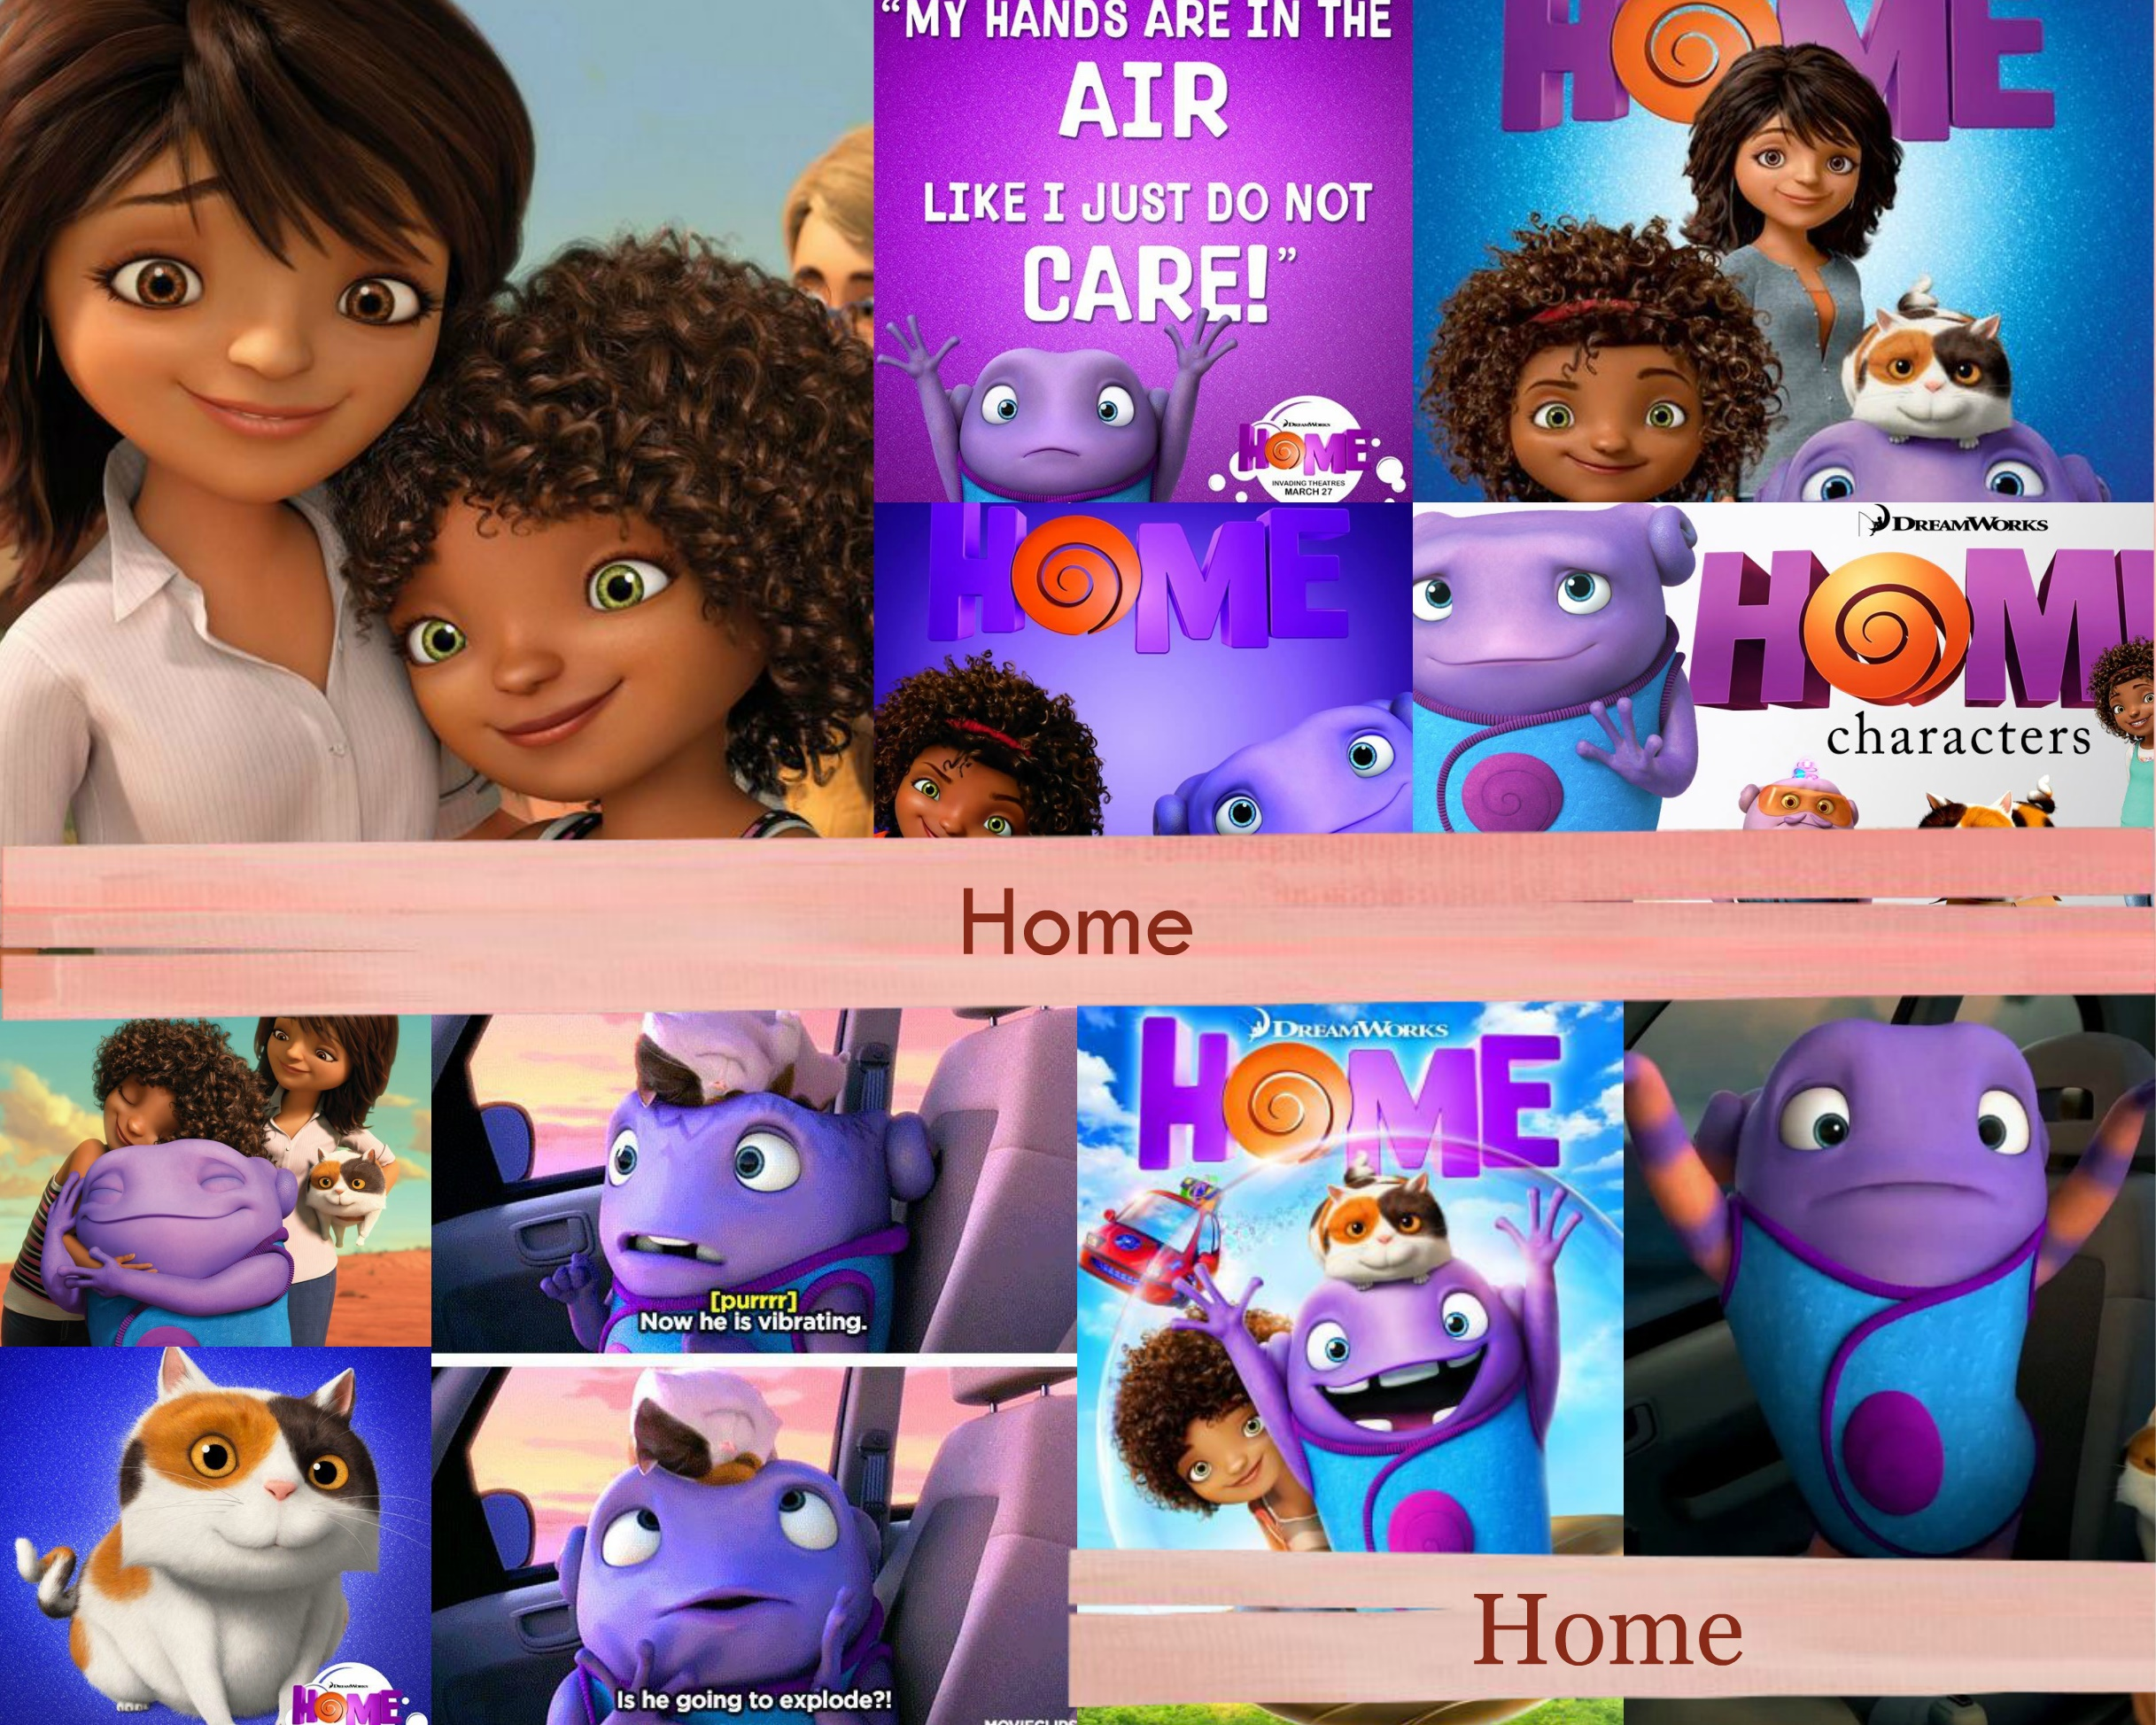 Home a 2015 movie images home collage hd wallpaper and for Wallpaper hd home movie